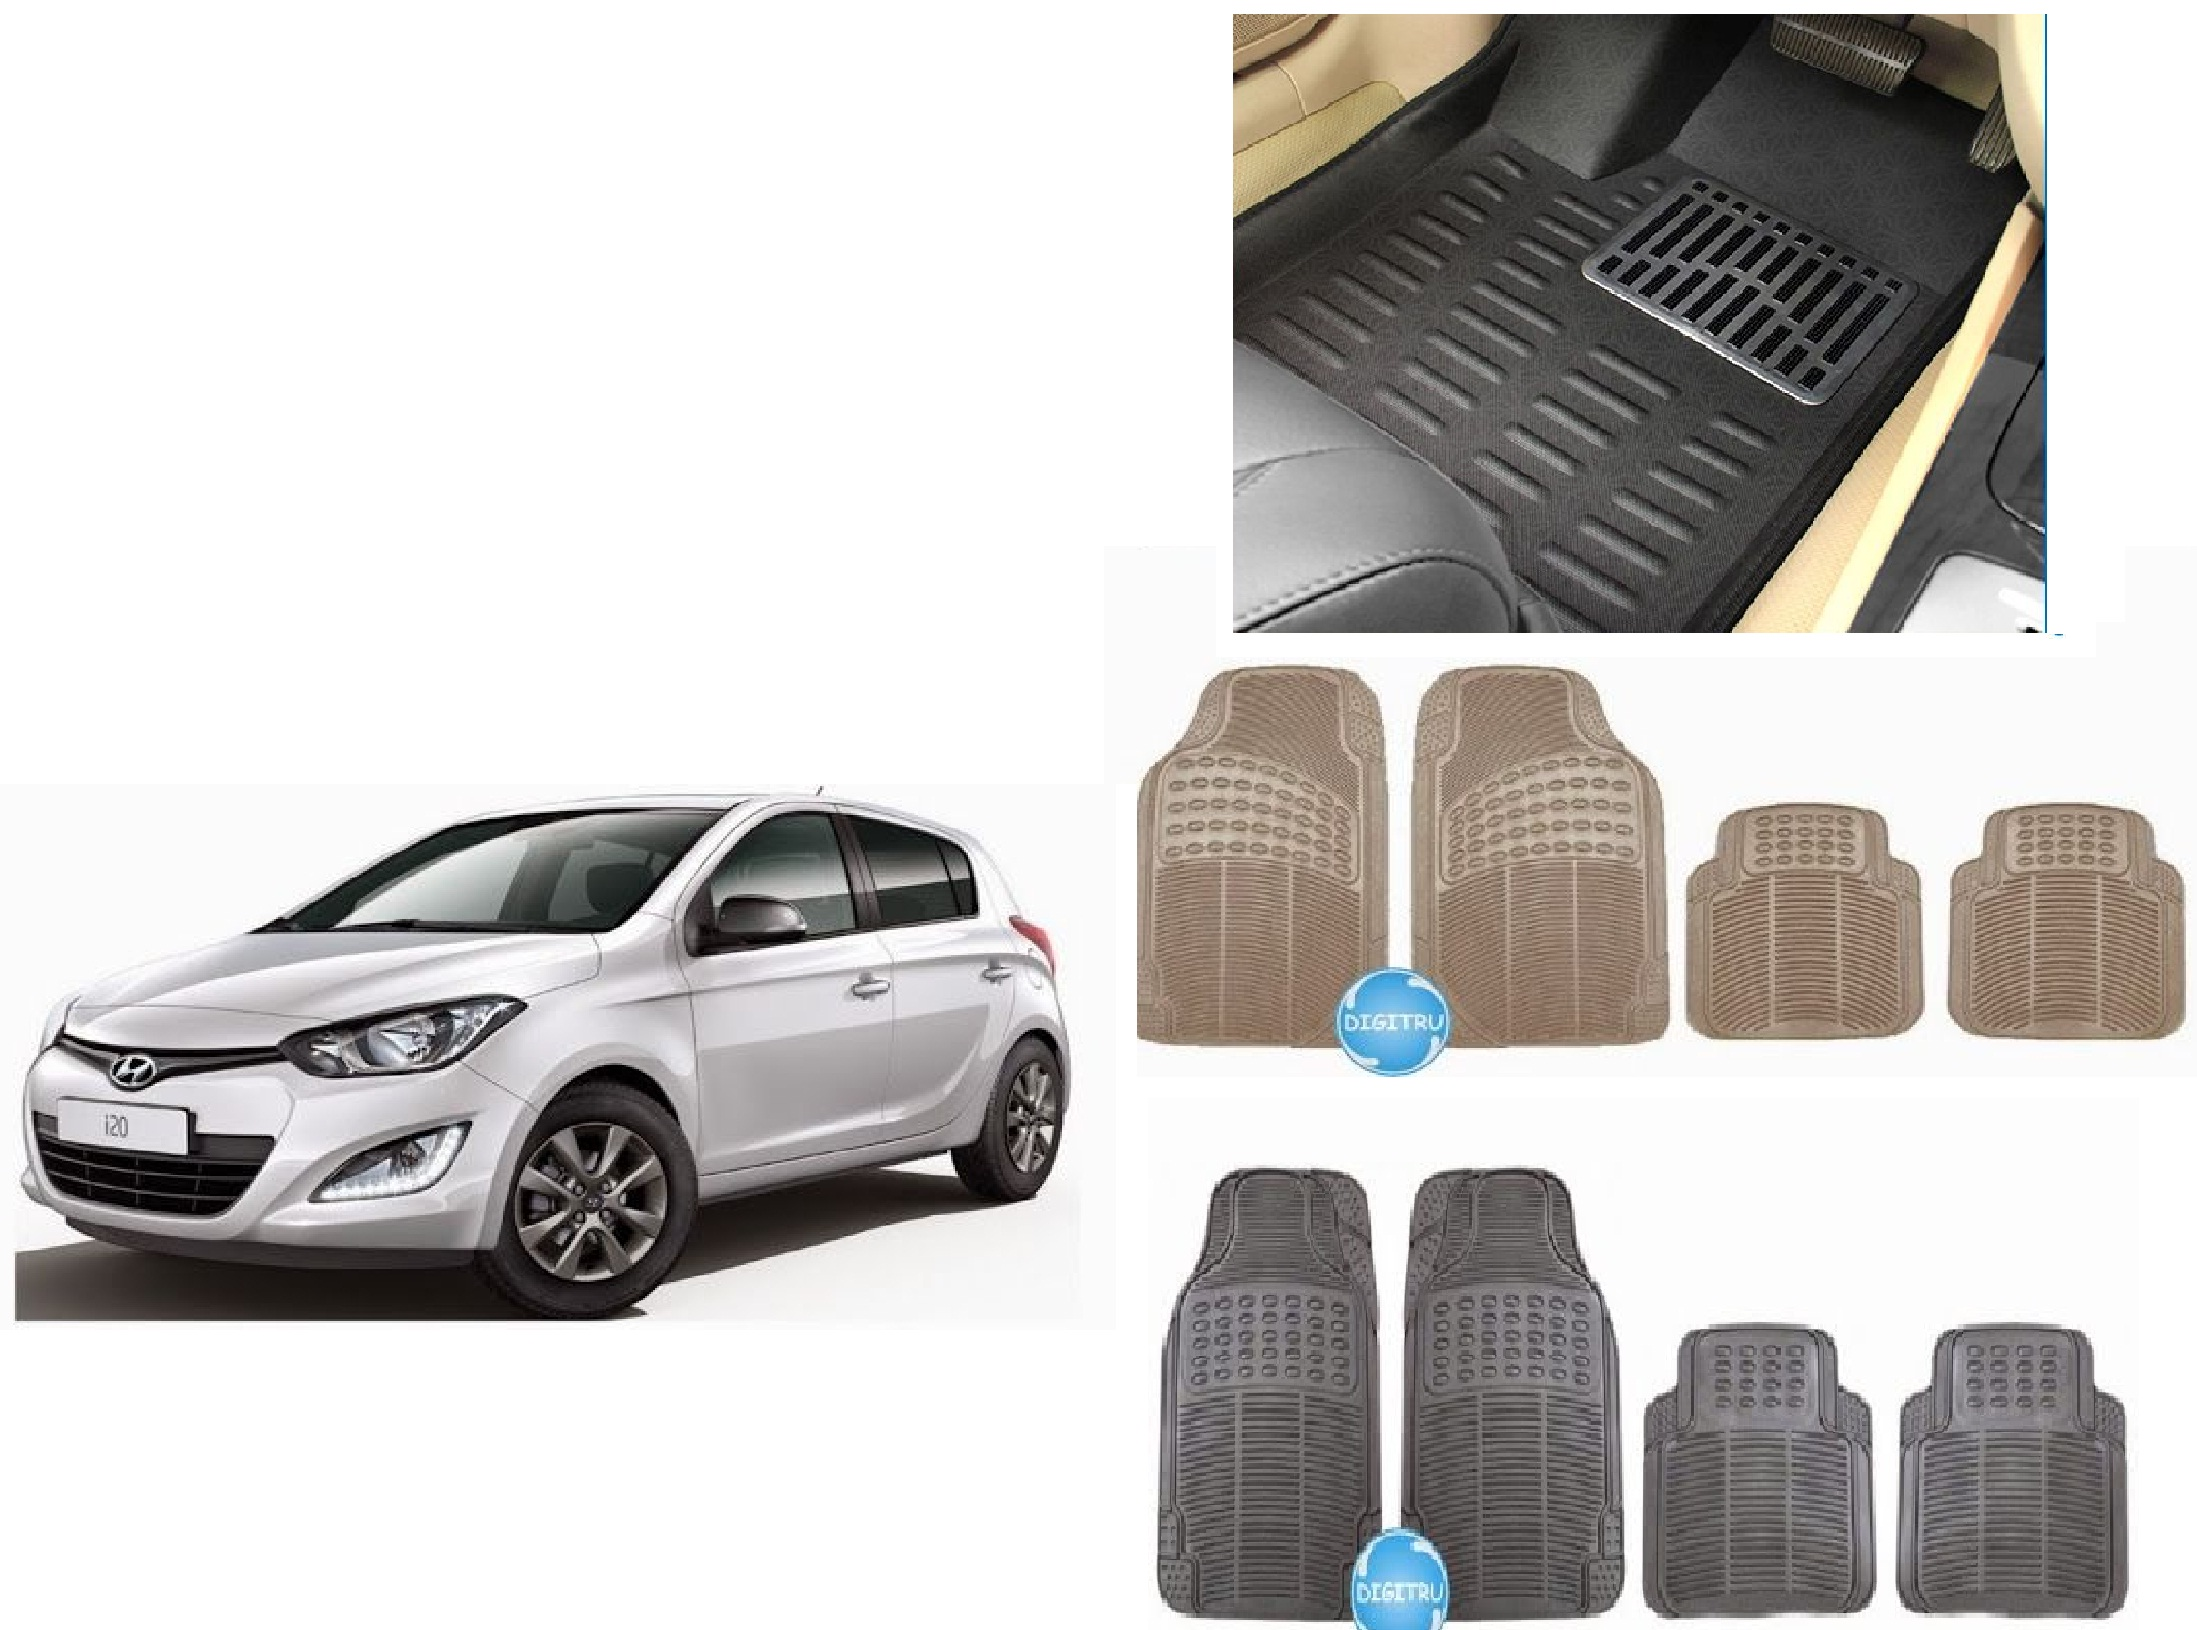 Car Bumper Guard >> 17 Car Accessories That Make Your Hyundai i20 Stylish & Safe - Best Travel Accessories | Travel ...